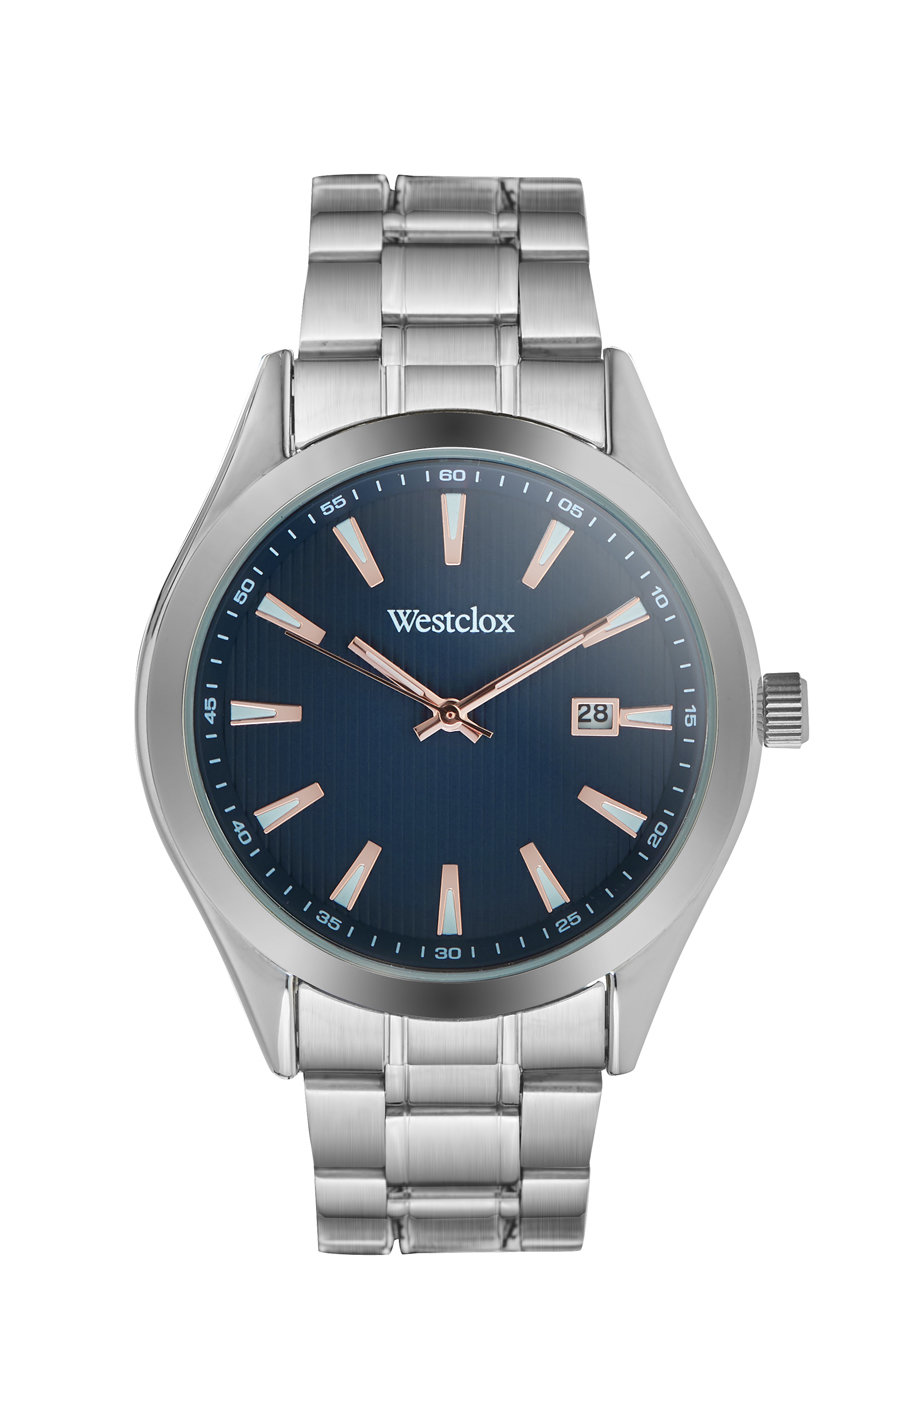 Westclox Watch with Silver Tone Metal Band, Date, and Blue Dial 51002